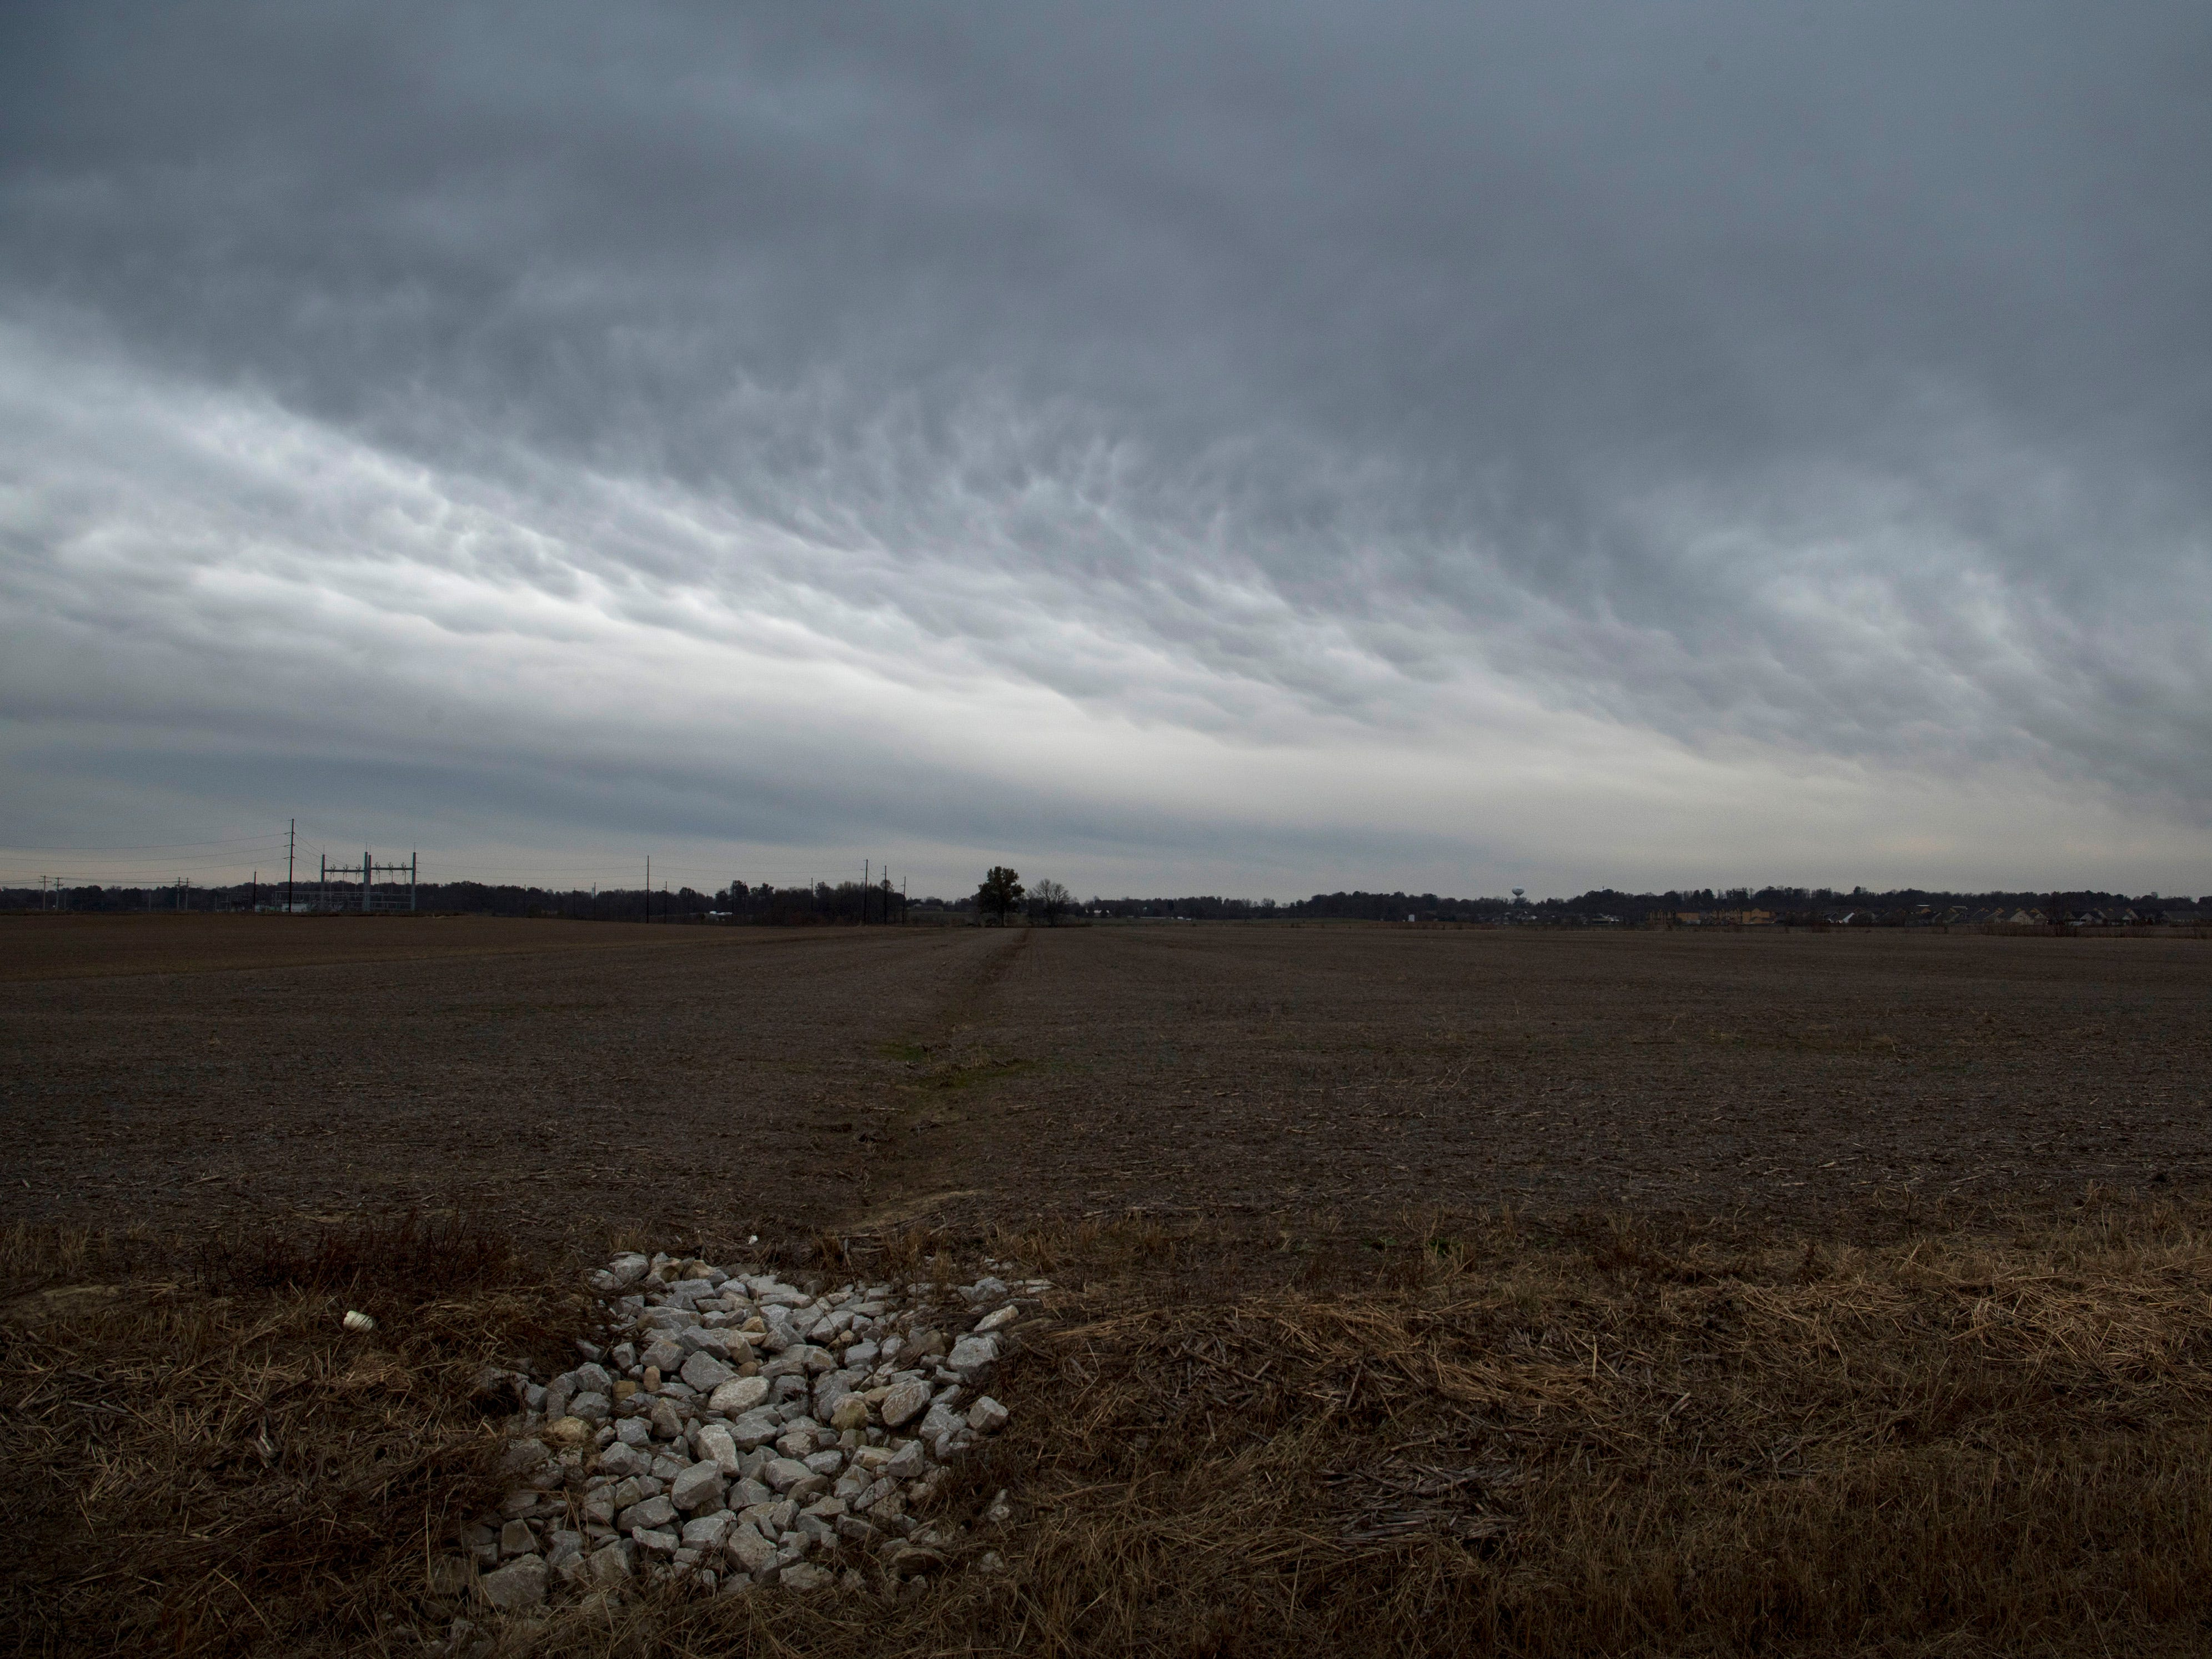 Storm clouds move north above Warrick County at 1:36 p.m. Wednesday. The area is expecting a winter storm to hit Evansville at 2:30 p.m. and leaving freezing rain and 2-5 inches of snow.